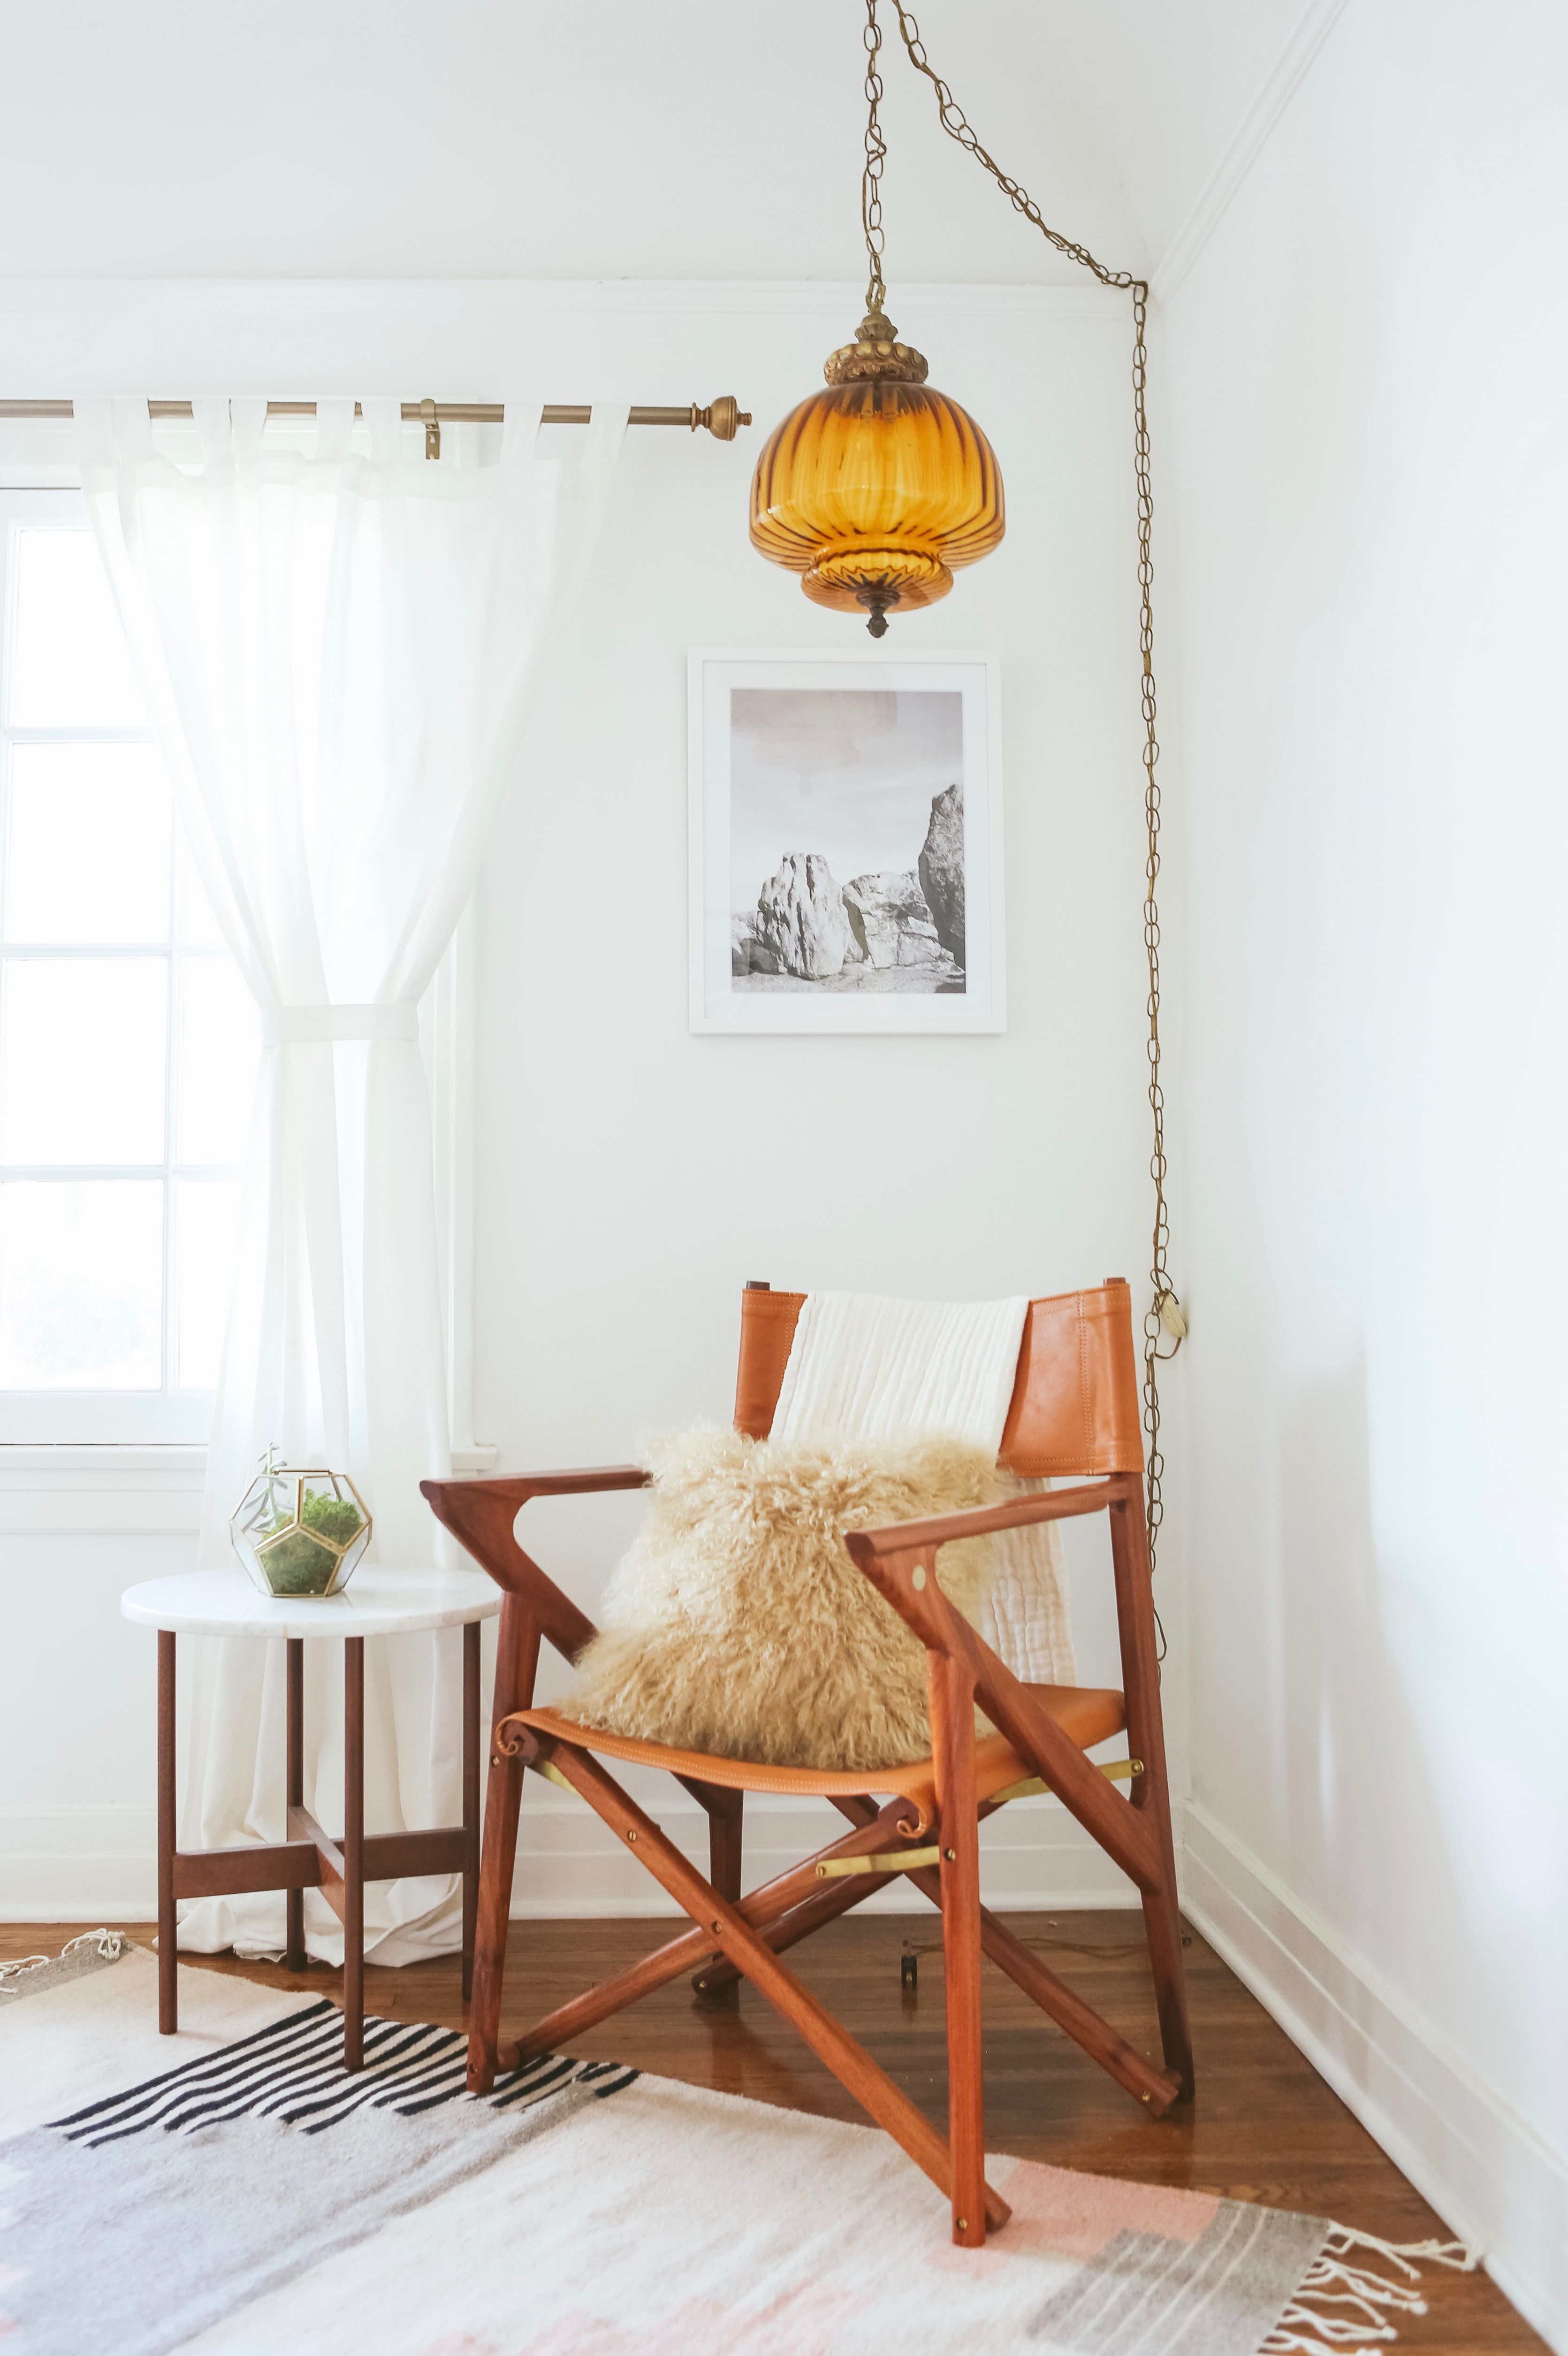 Gallery Wall Frame Premium Wood Frame In 2020 Hanging Lights